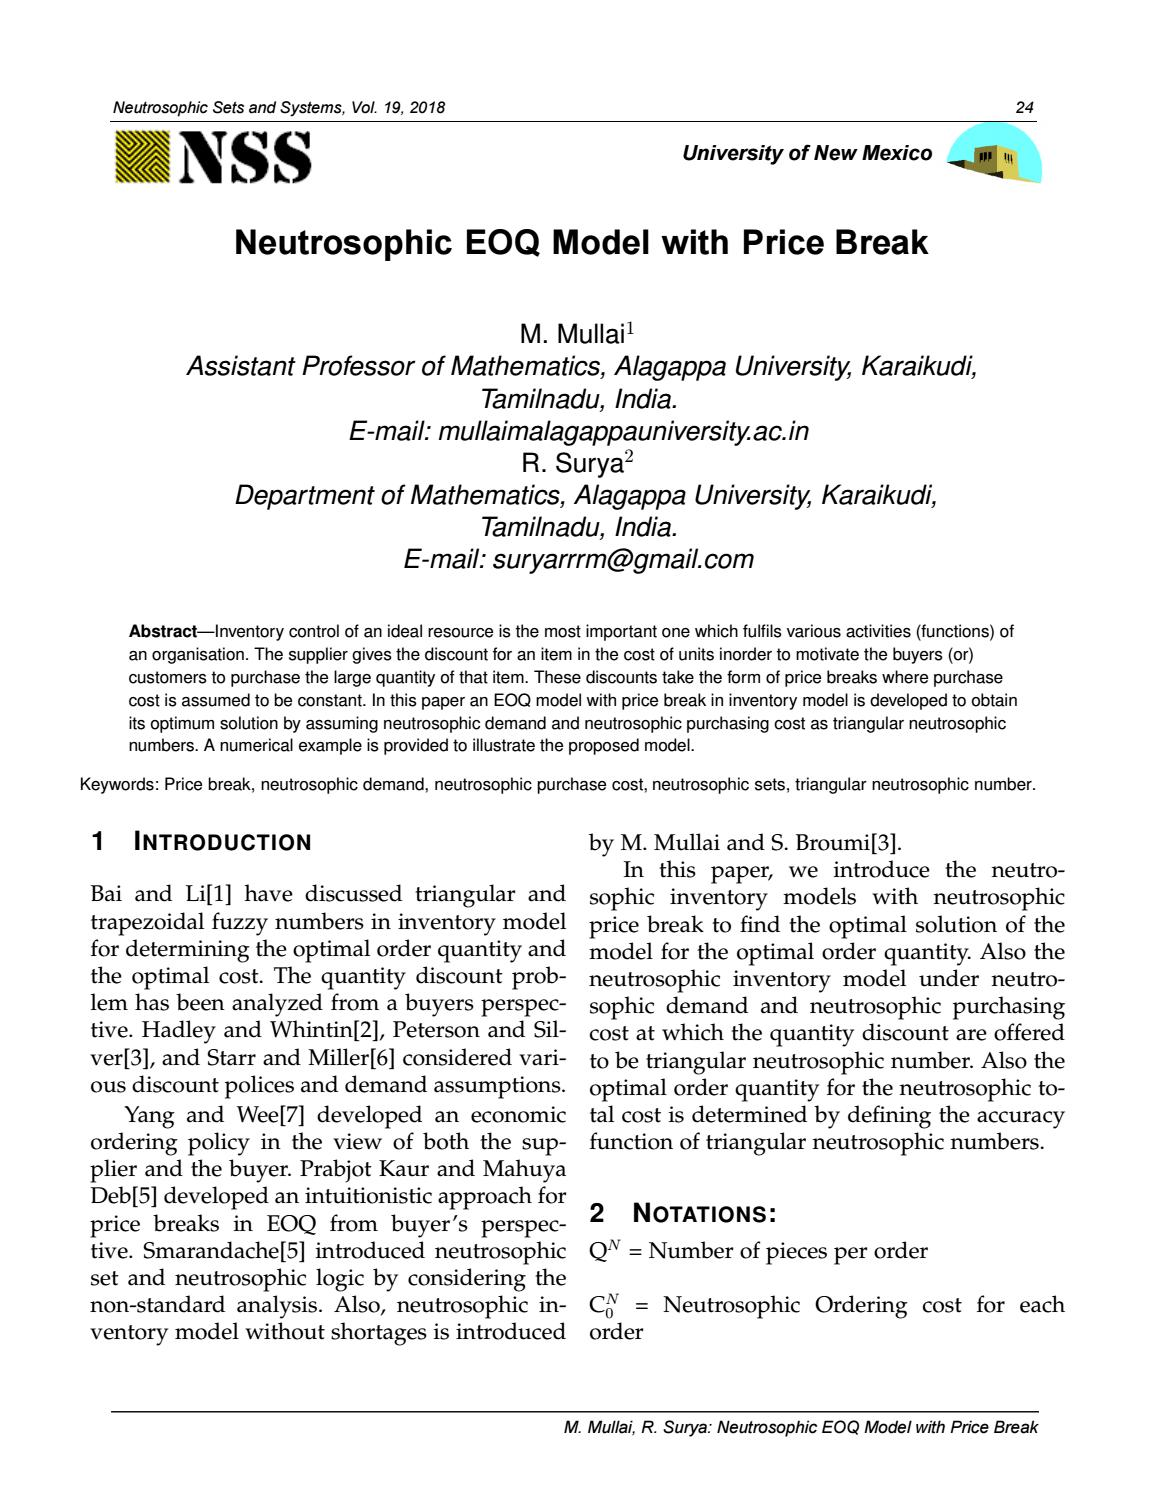 Neutrosophic EOQ Model with Price Break by Ioan Degău - issuu